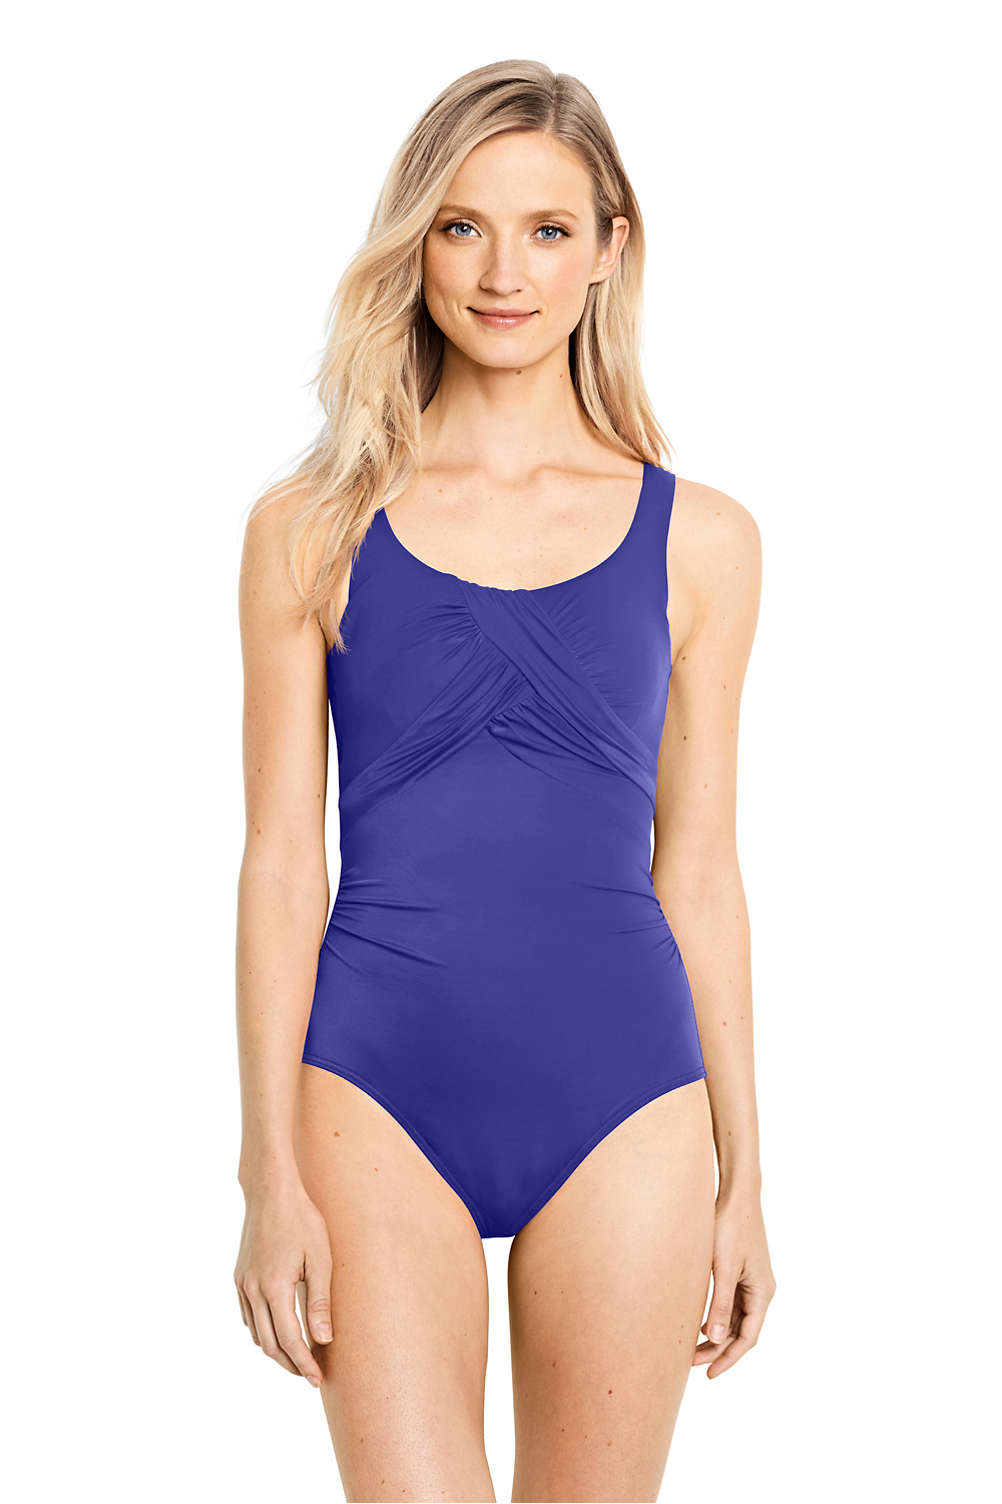 a1ef2d160a5f2 Women's Slender Carmela Underwire One Piece Swimsuit with Tummy Control  from Lands' End